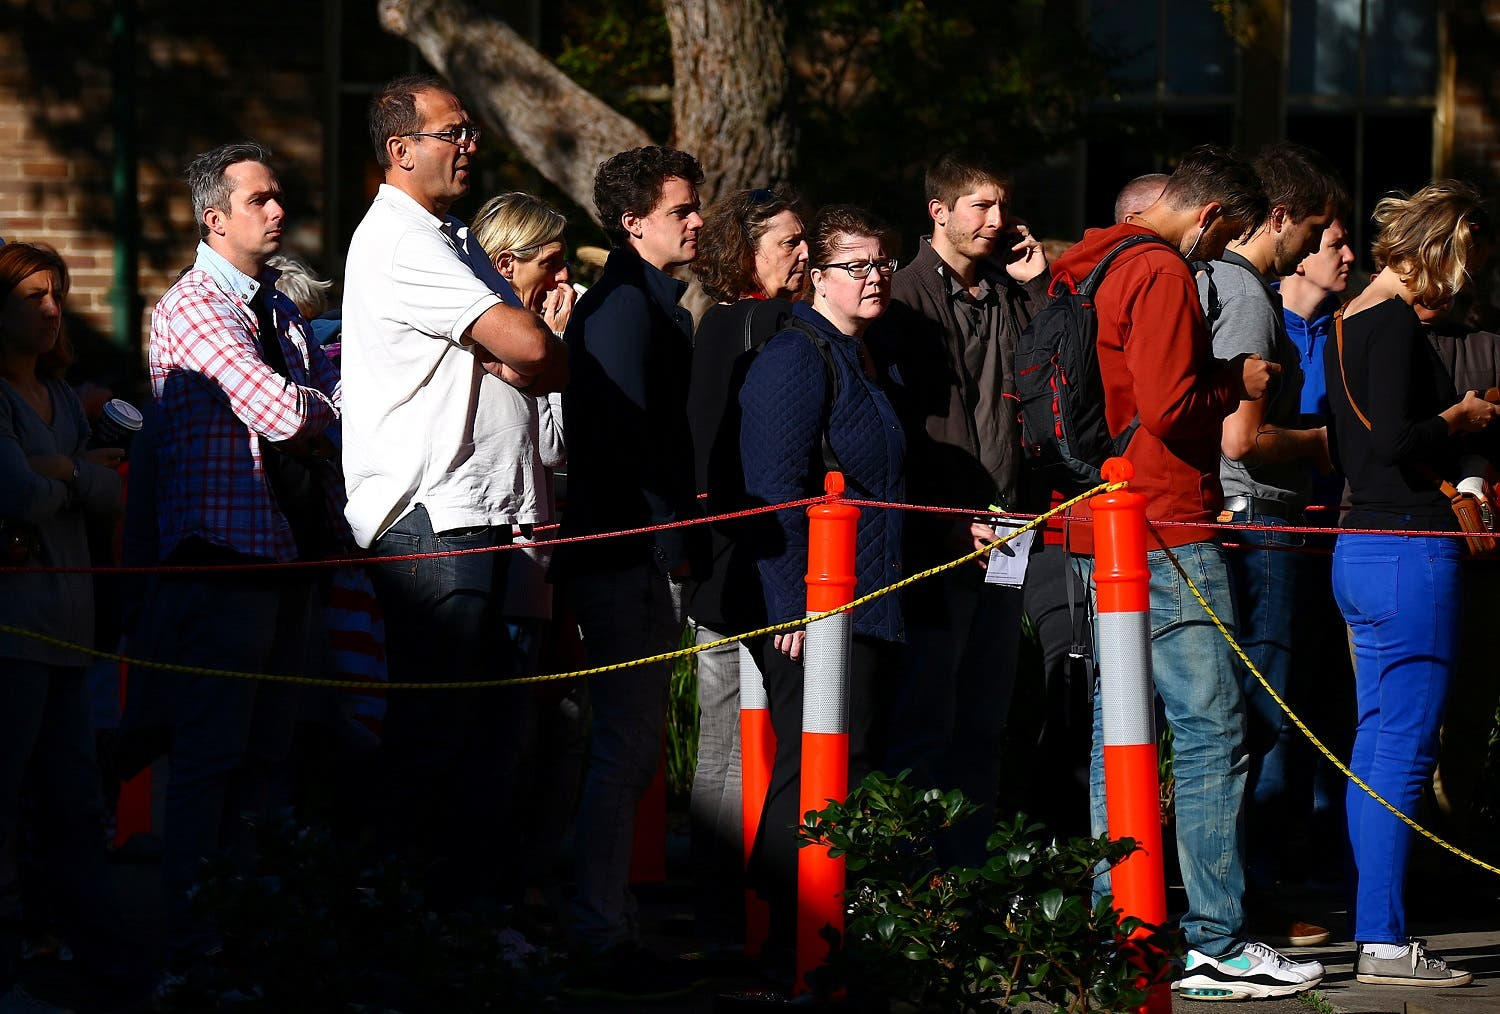 French nationals living in Australia stand in a line as they wait to cast their votes in the presidential poll located at a polling booth located at a school in Sydney, Australia, on May 7, 2017. (Reuters)